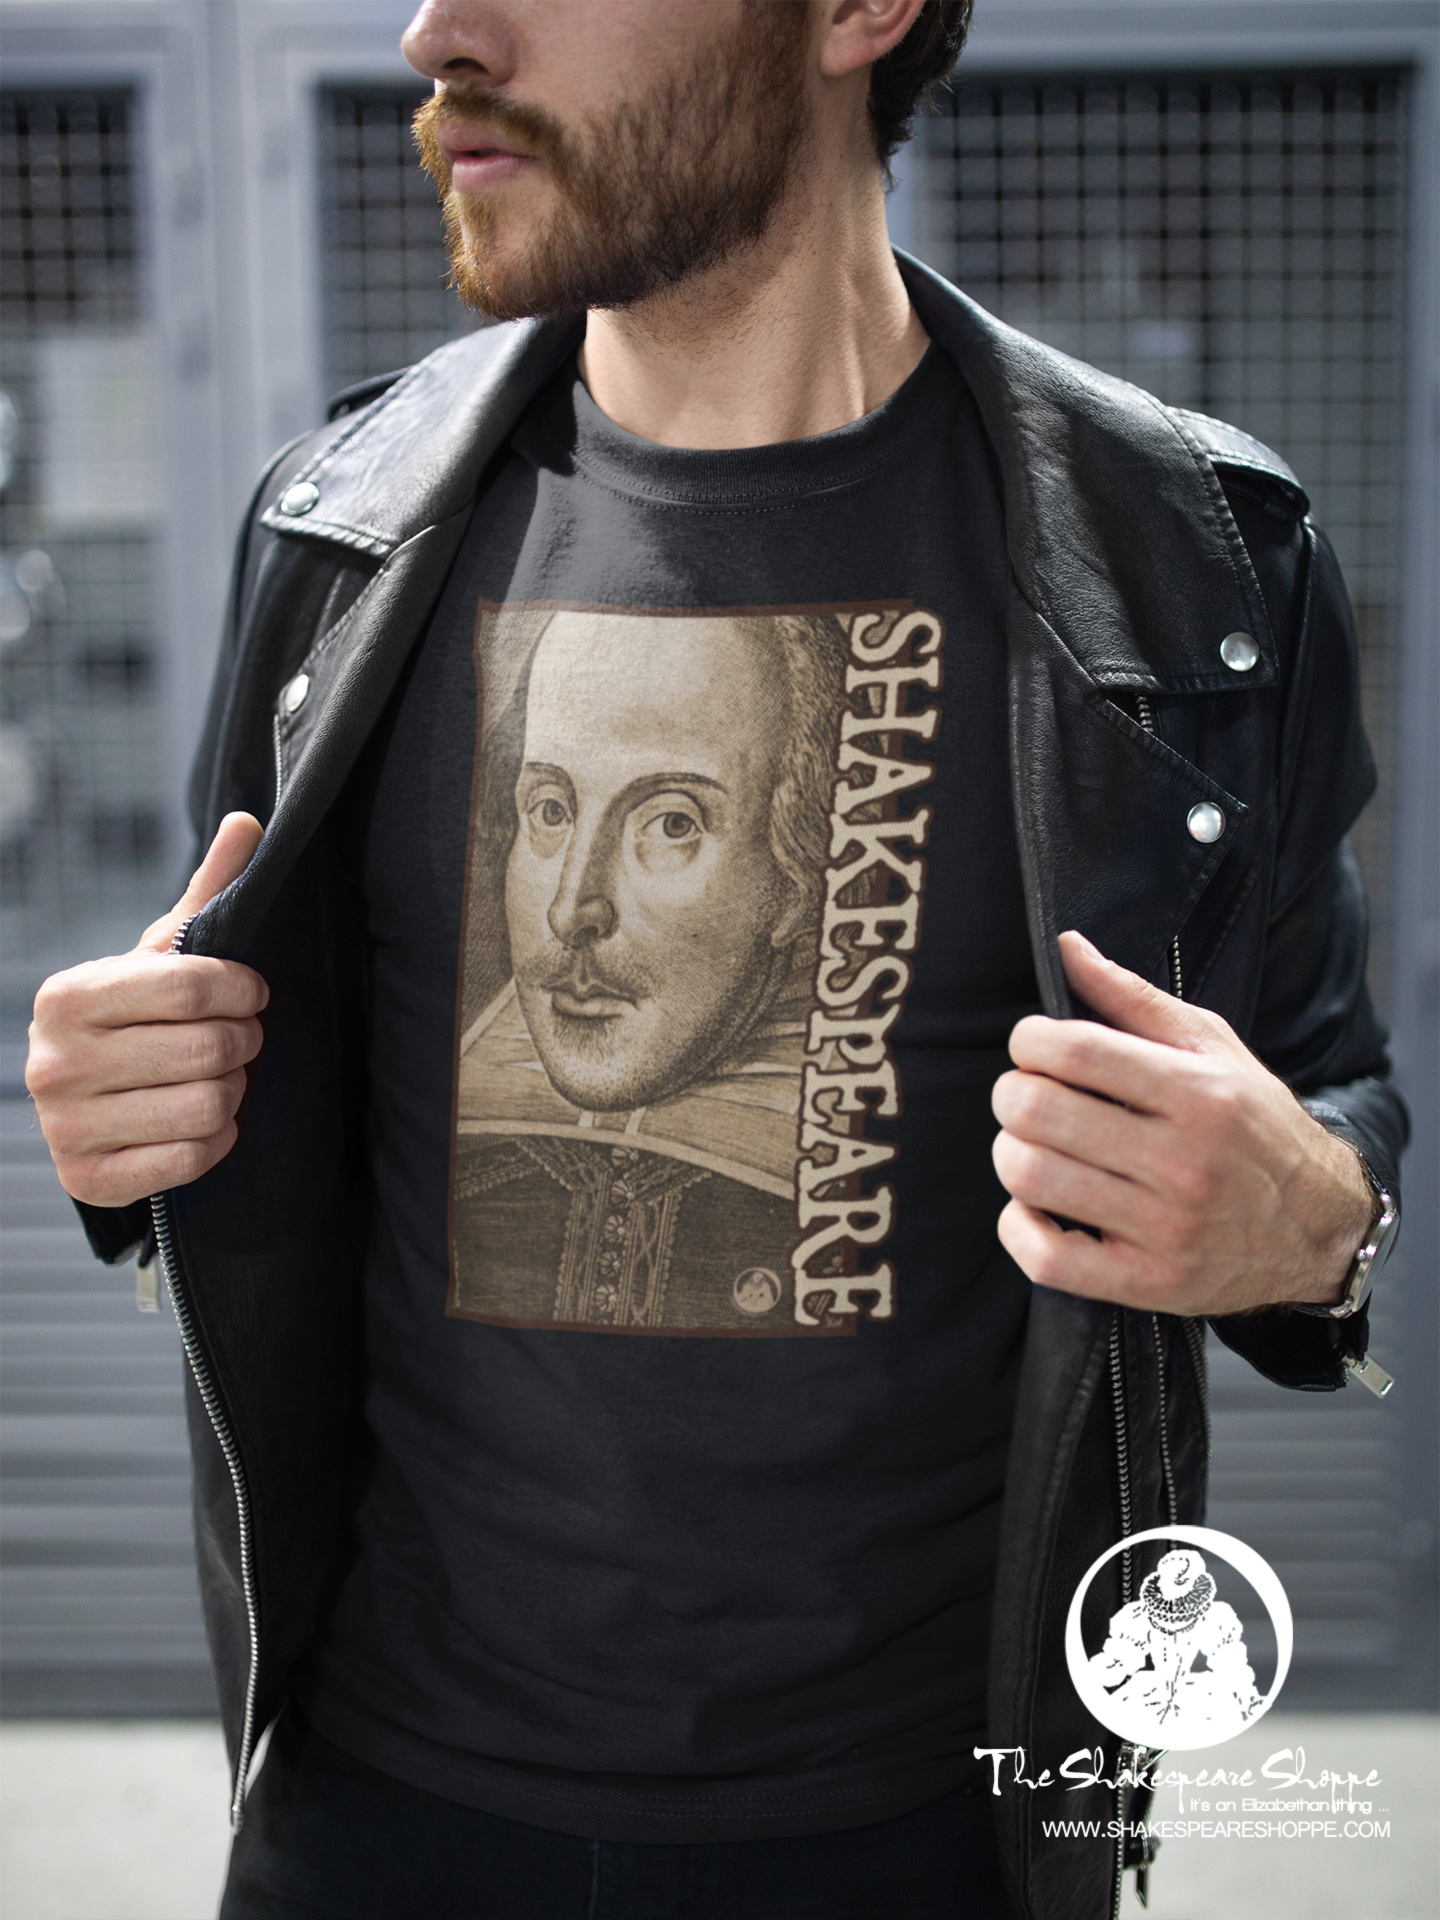 Focus On: Shakespeare Droeshout Engraving Portrait Unisex T-shirt #Shakespeare #tshirt